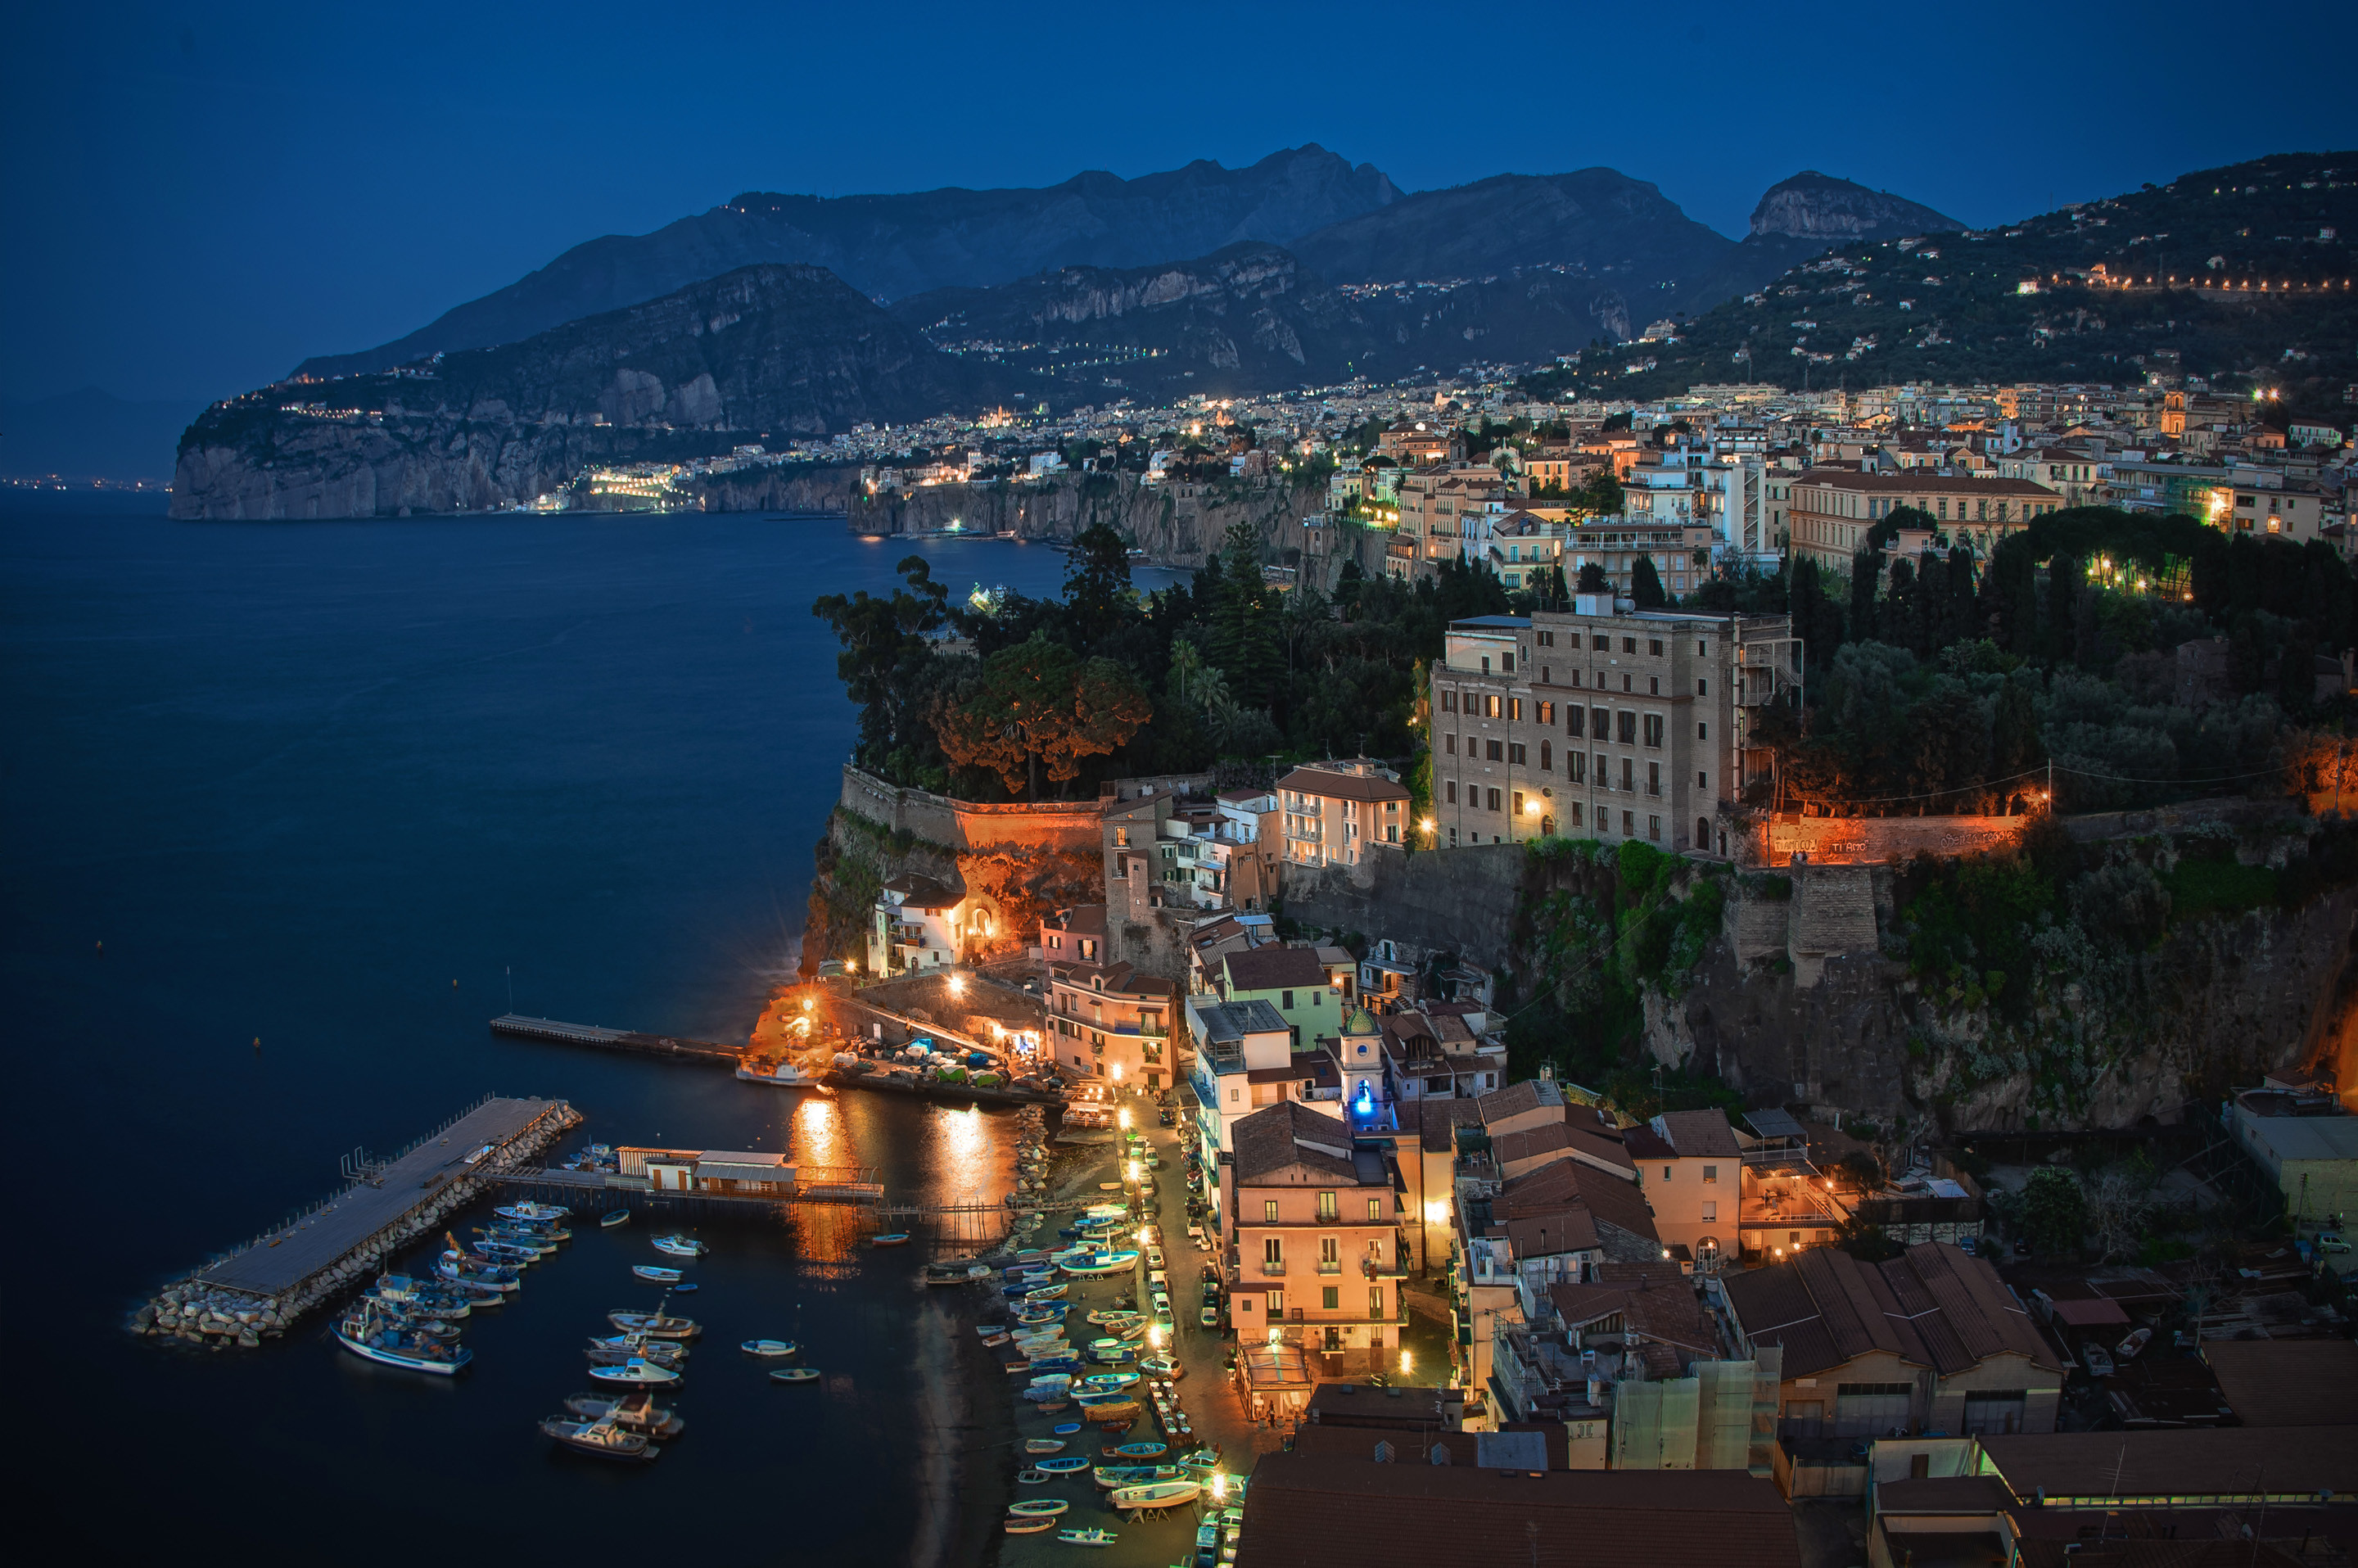 Wallpapers Sorrento Italy Coast From above night time Cities Houses  Night Building